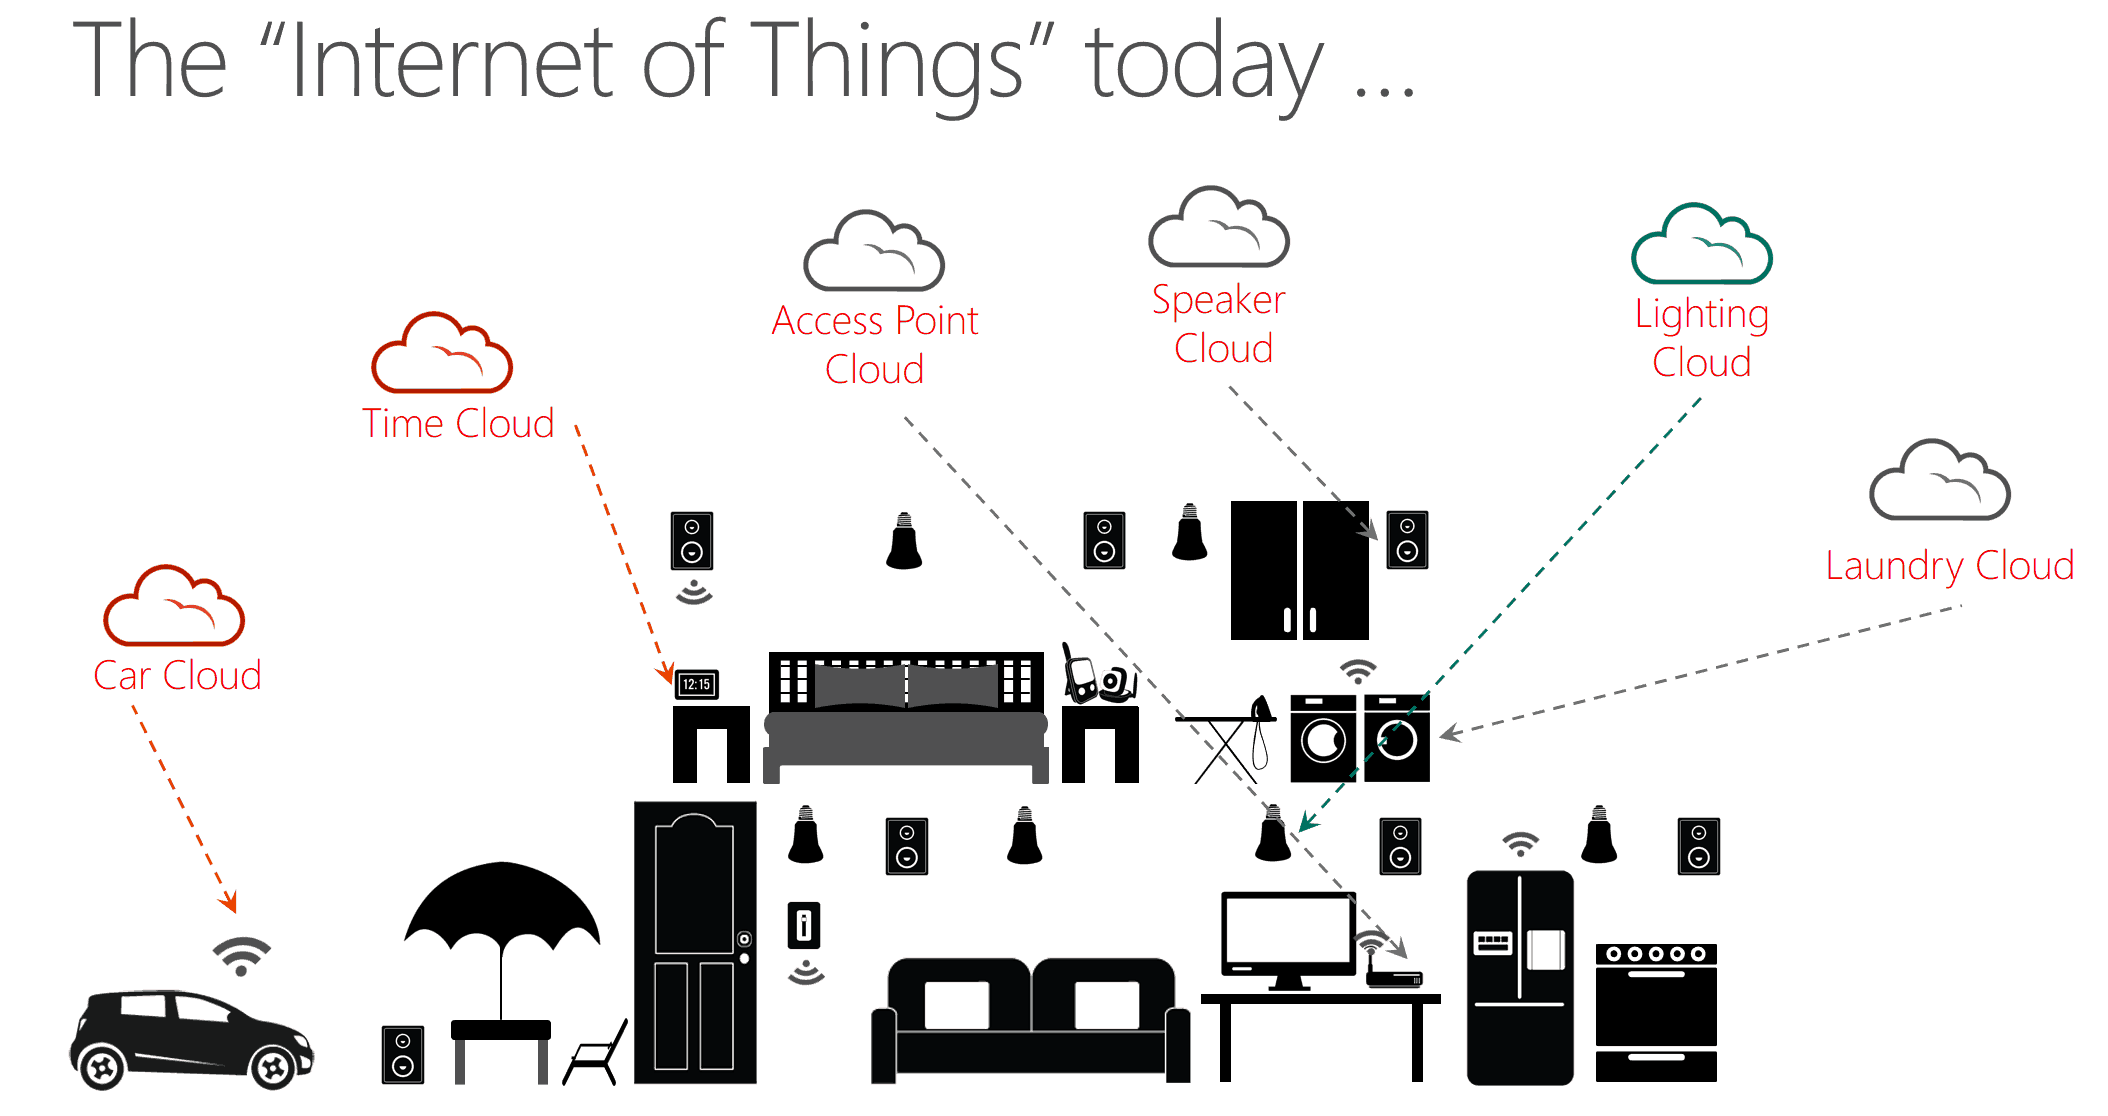 Microsoft and the Internet of Things - Thomas Maurer